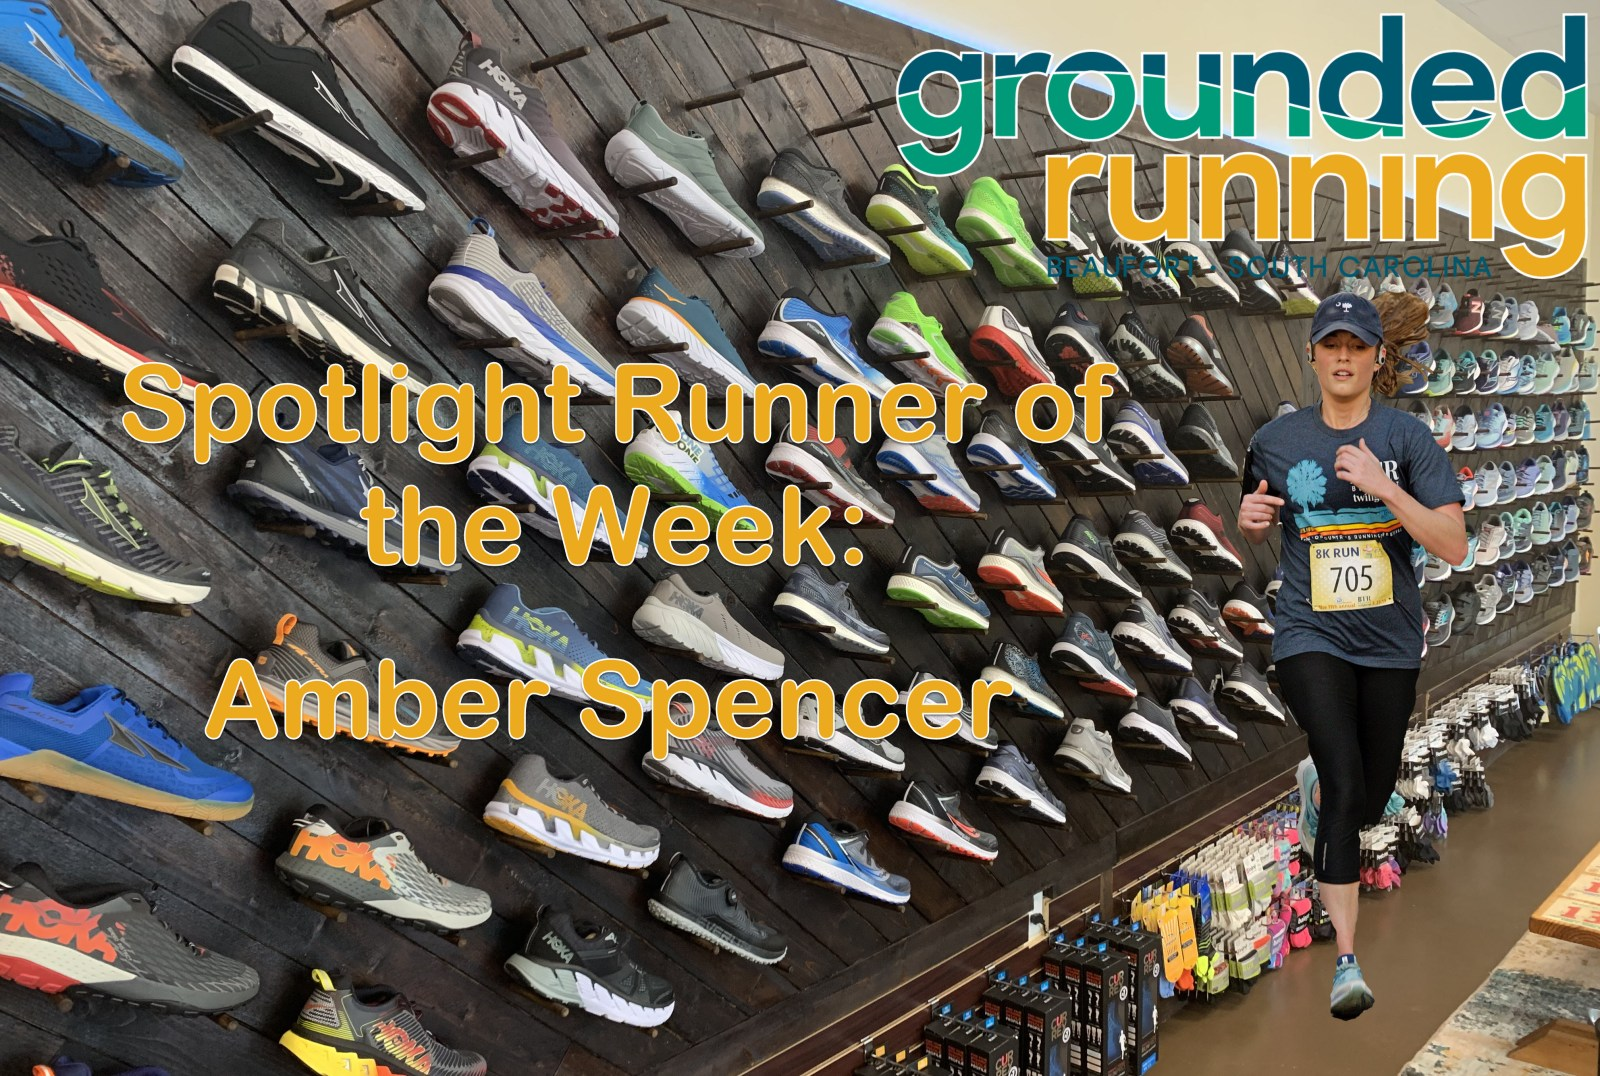 Amber Spencer - Featured Runner of the Week Grounded Running